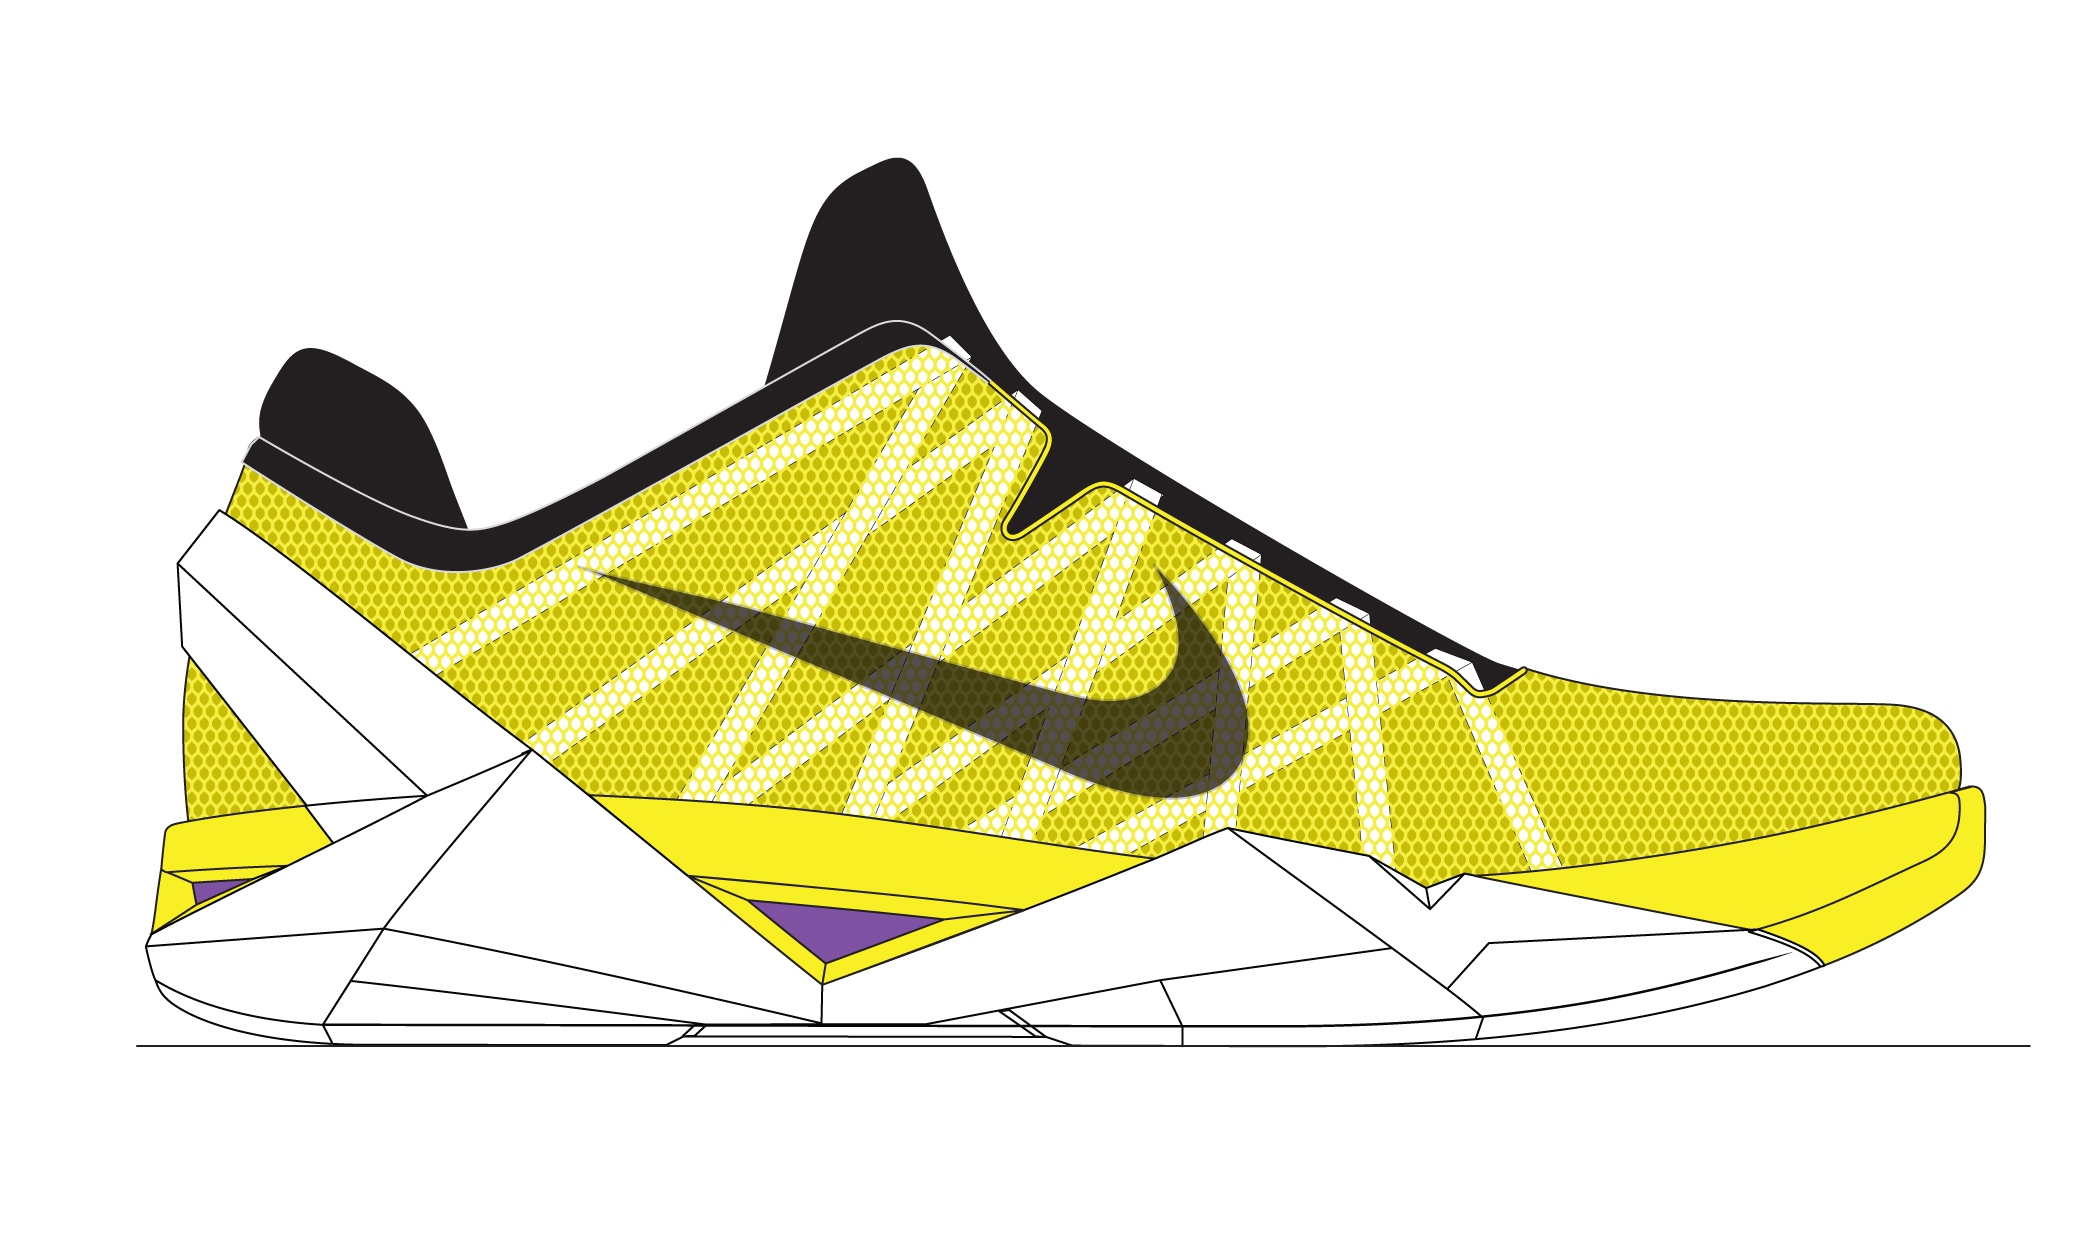 Drawn sneakers kobe 9 System: and · Avar Building